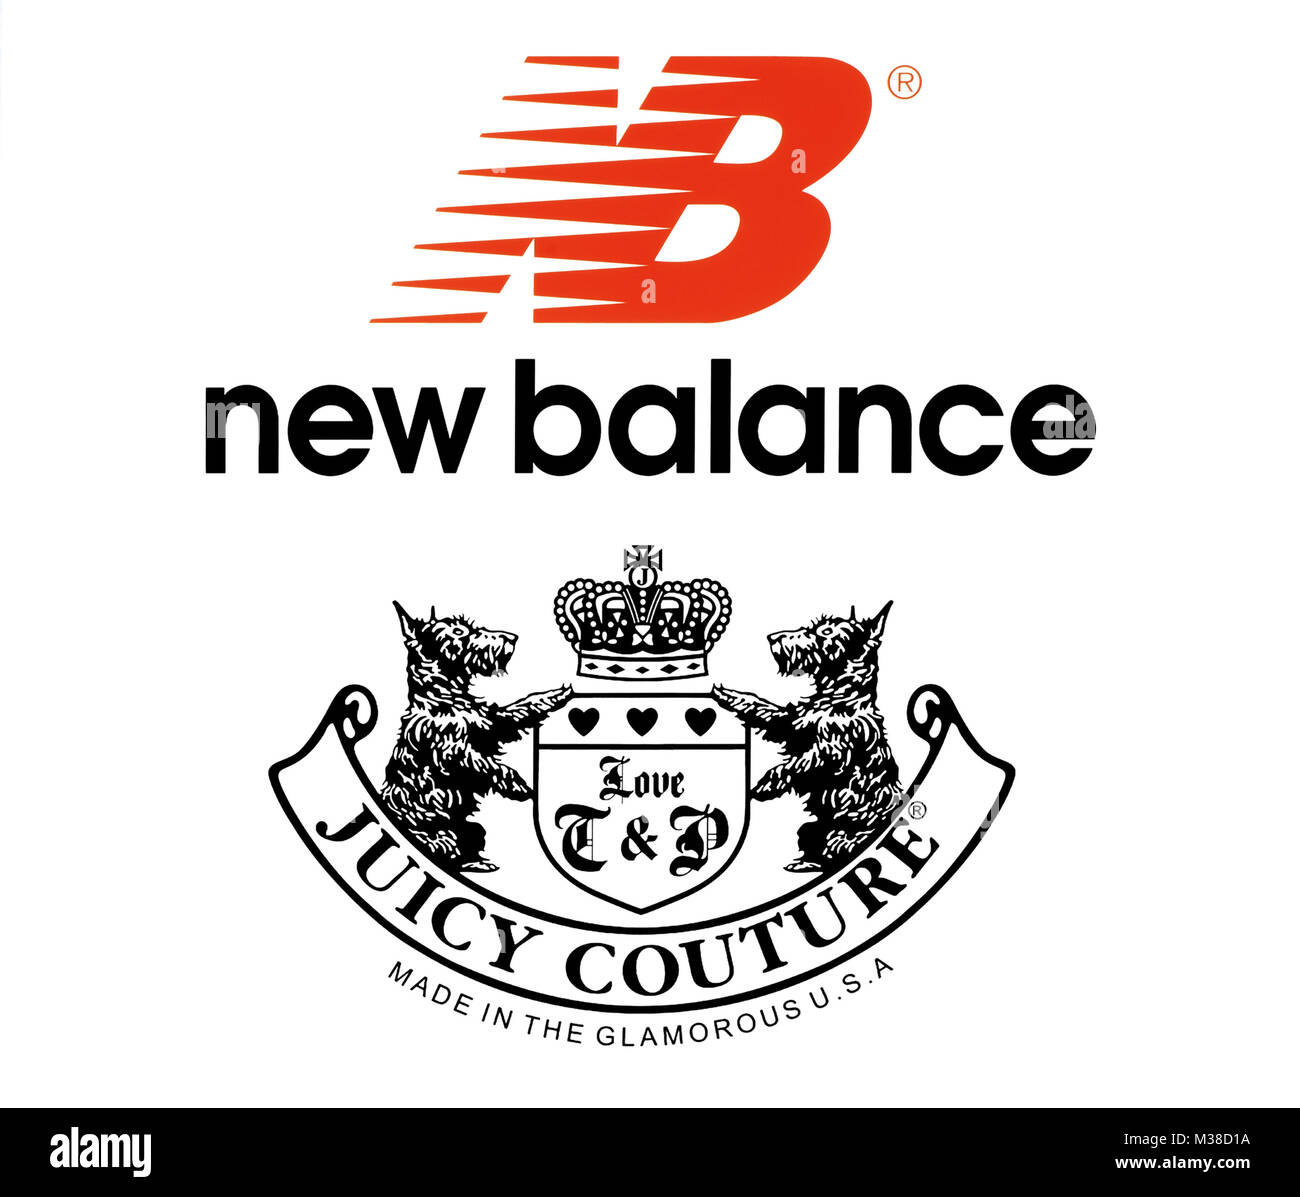 New balance shoes stock photos new balance shoes stock images kiev ukraine october 27 2017 collection of popular sportswear manufactures logos printed biocorpaavc Choice Image